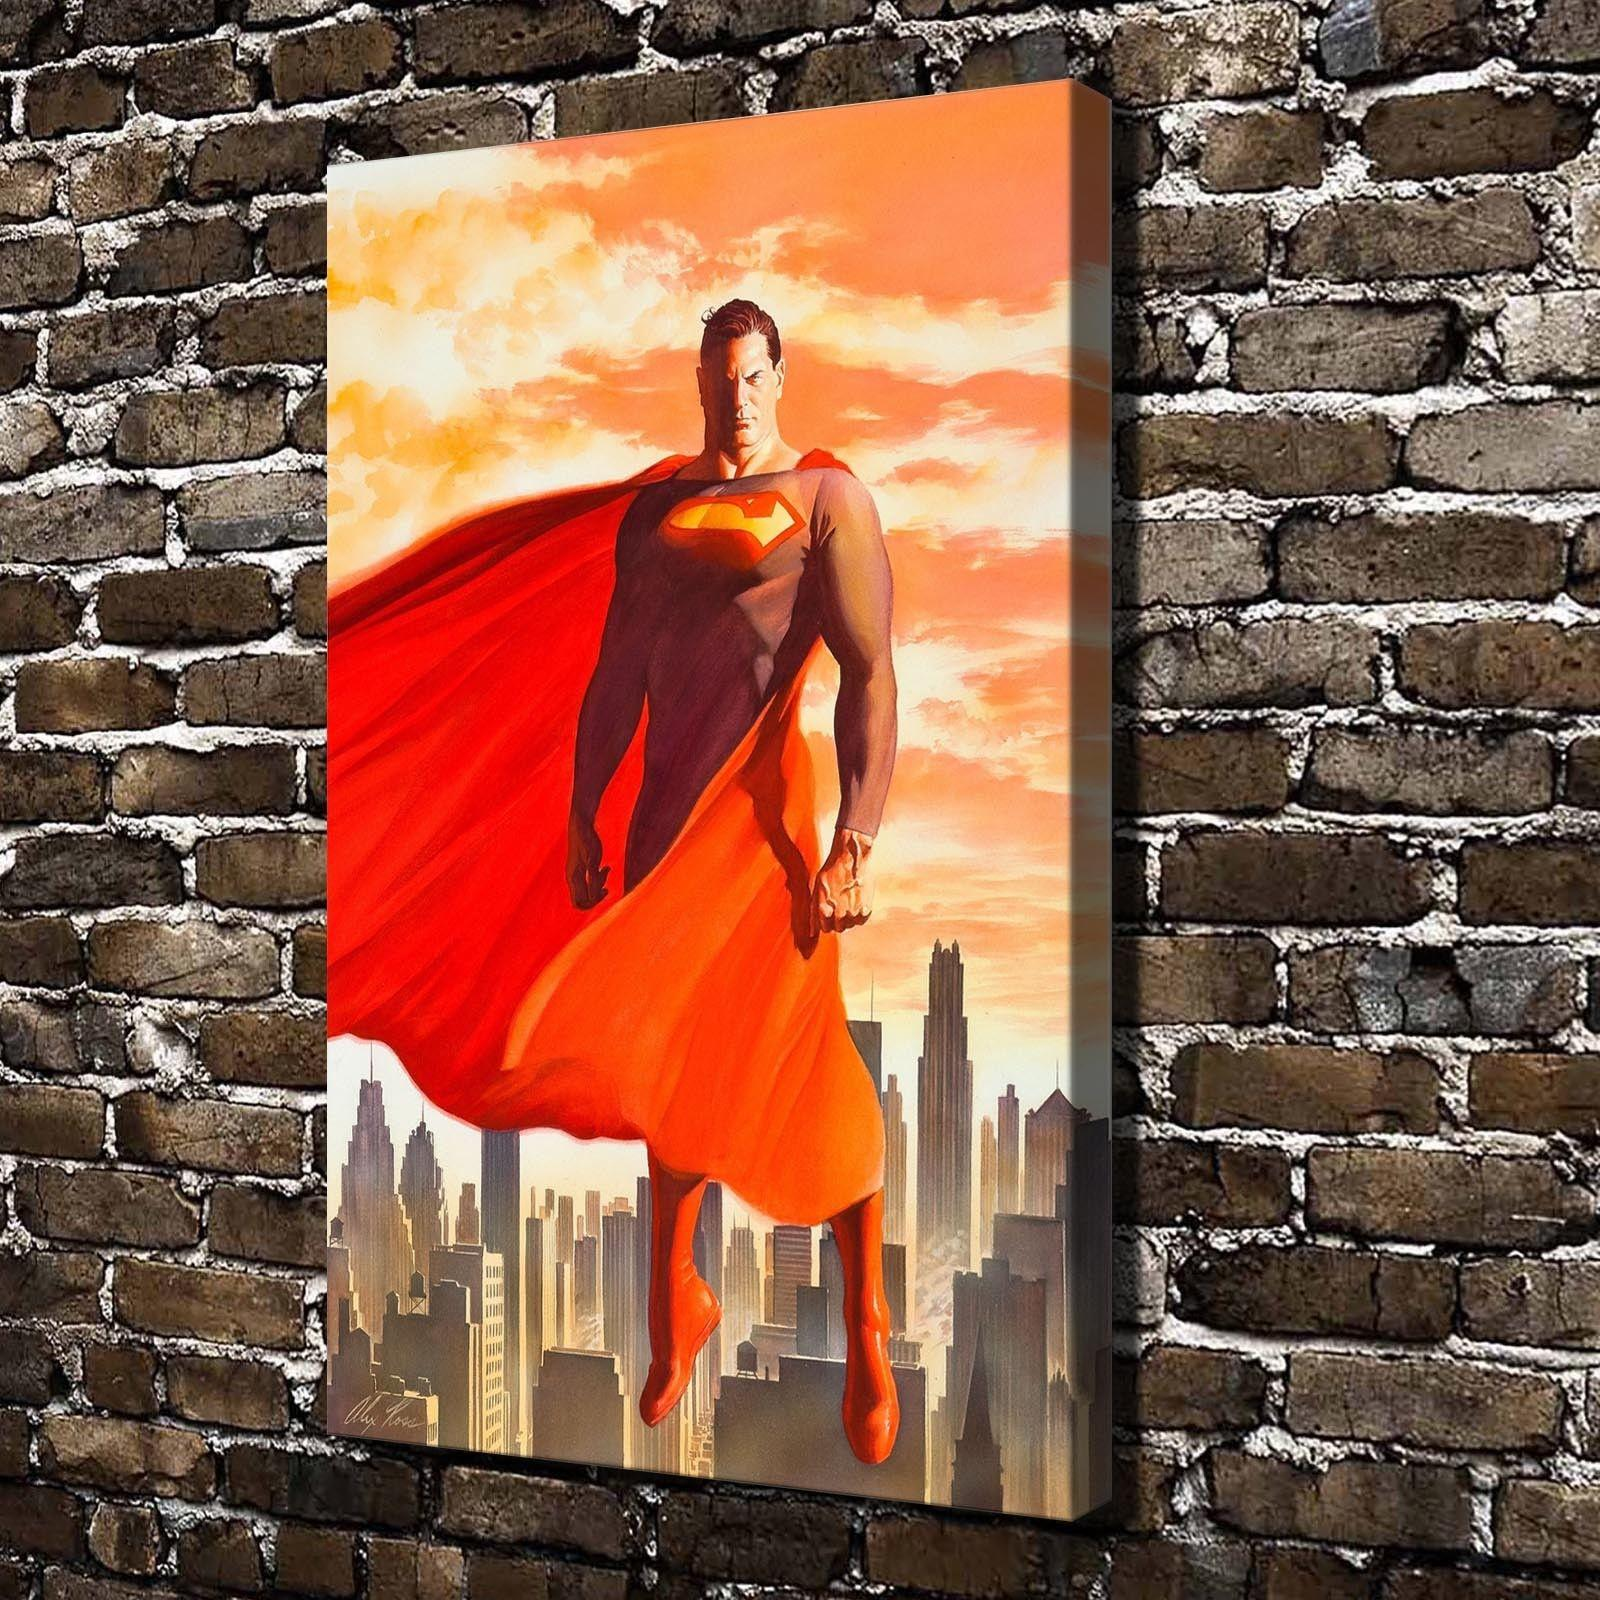 2019 DC SupermanHome Decor HD Printed Modern Art Painting On Canvas Unframed Framed From Qq53561562 769